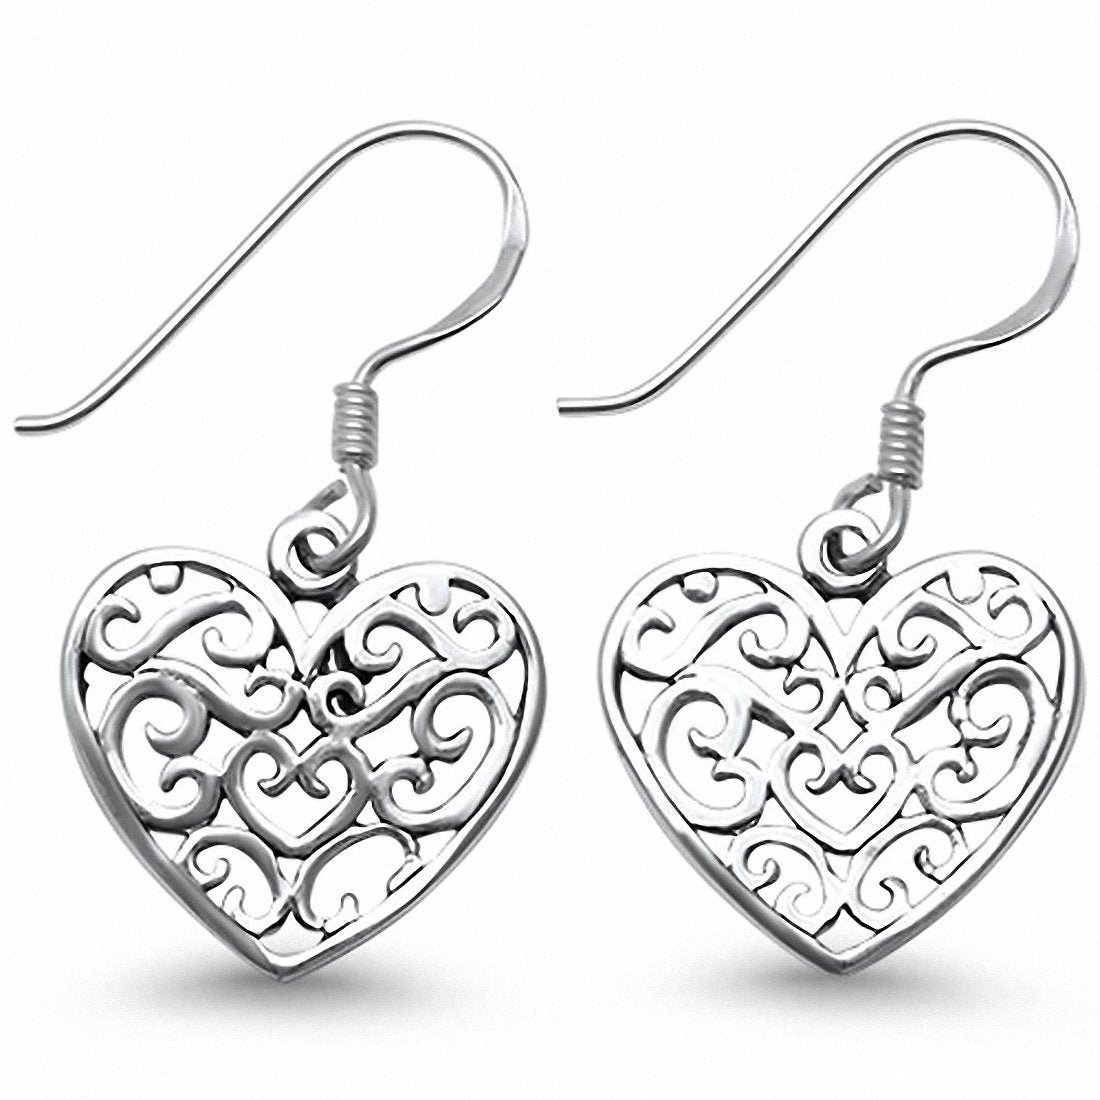 2ac112e28 ... Earrings 925 Sterling Silver Fish Hook Choose Color. Tap to expand